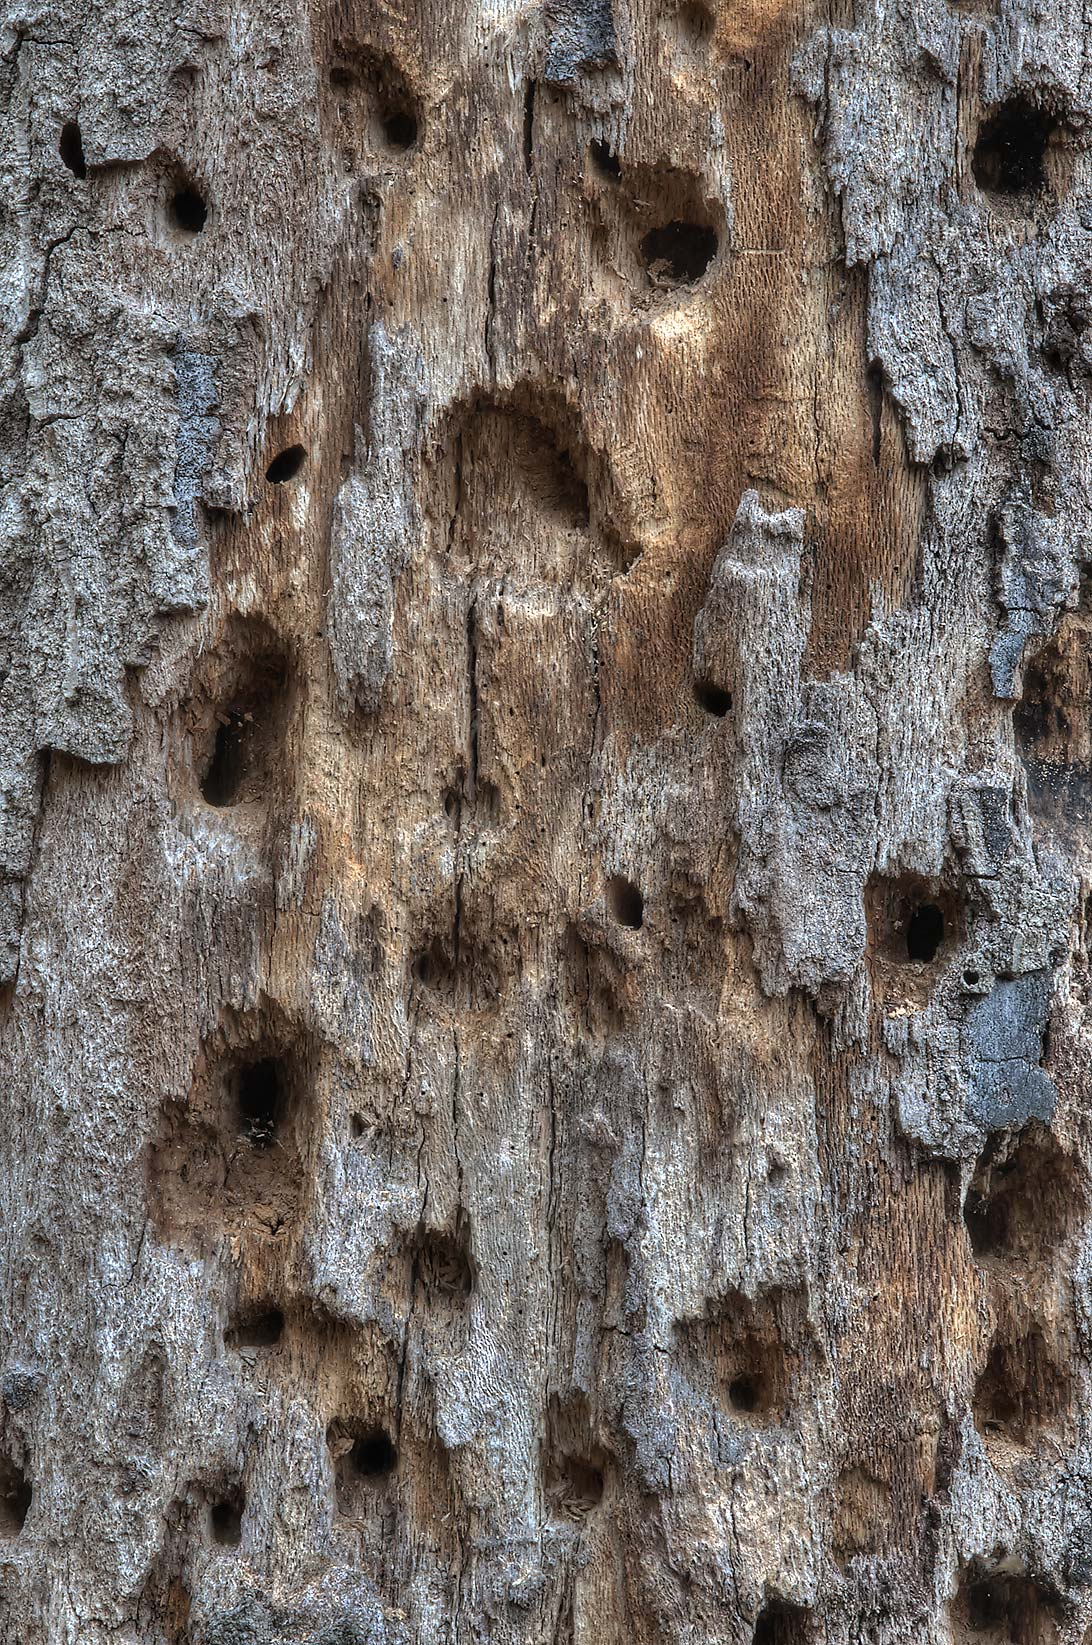 Woodpecker holes on a rotten tree in Lick Creek Park. College Station, Texas